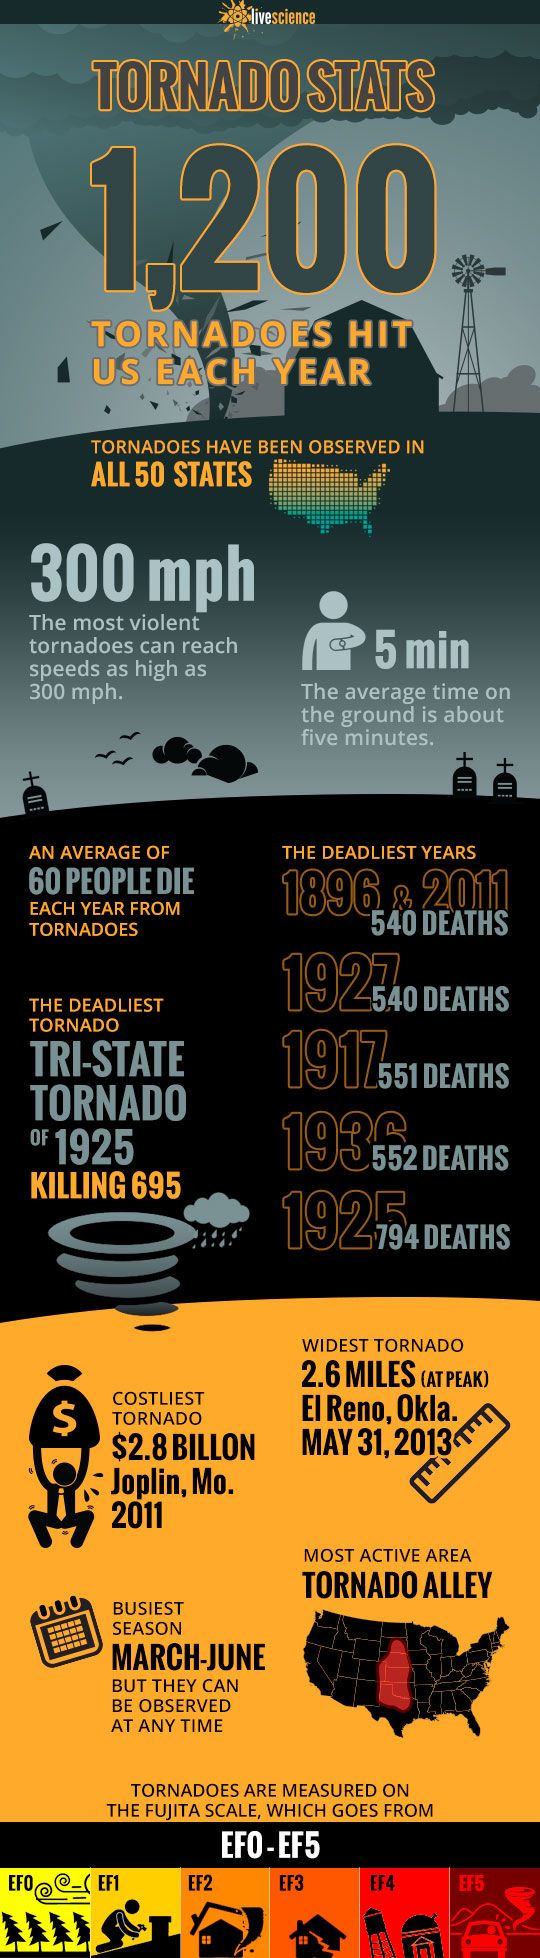 37 best secondary geography images on pinterest geography amazing tornado infographic fandeluxe Choice Image